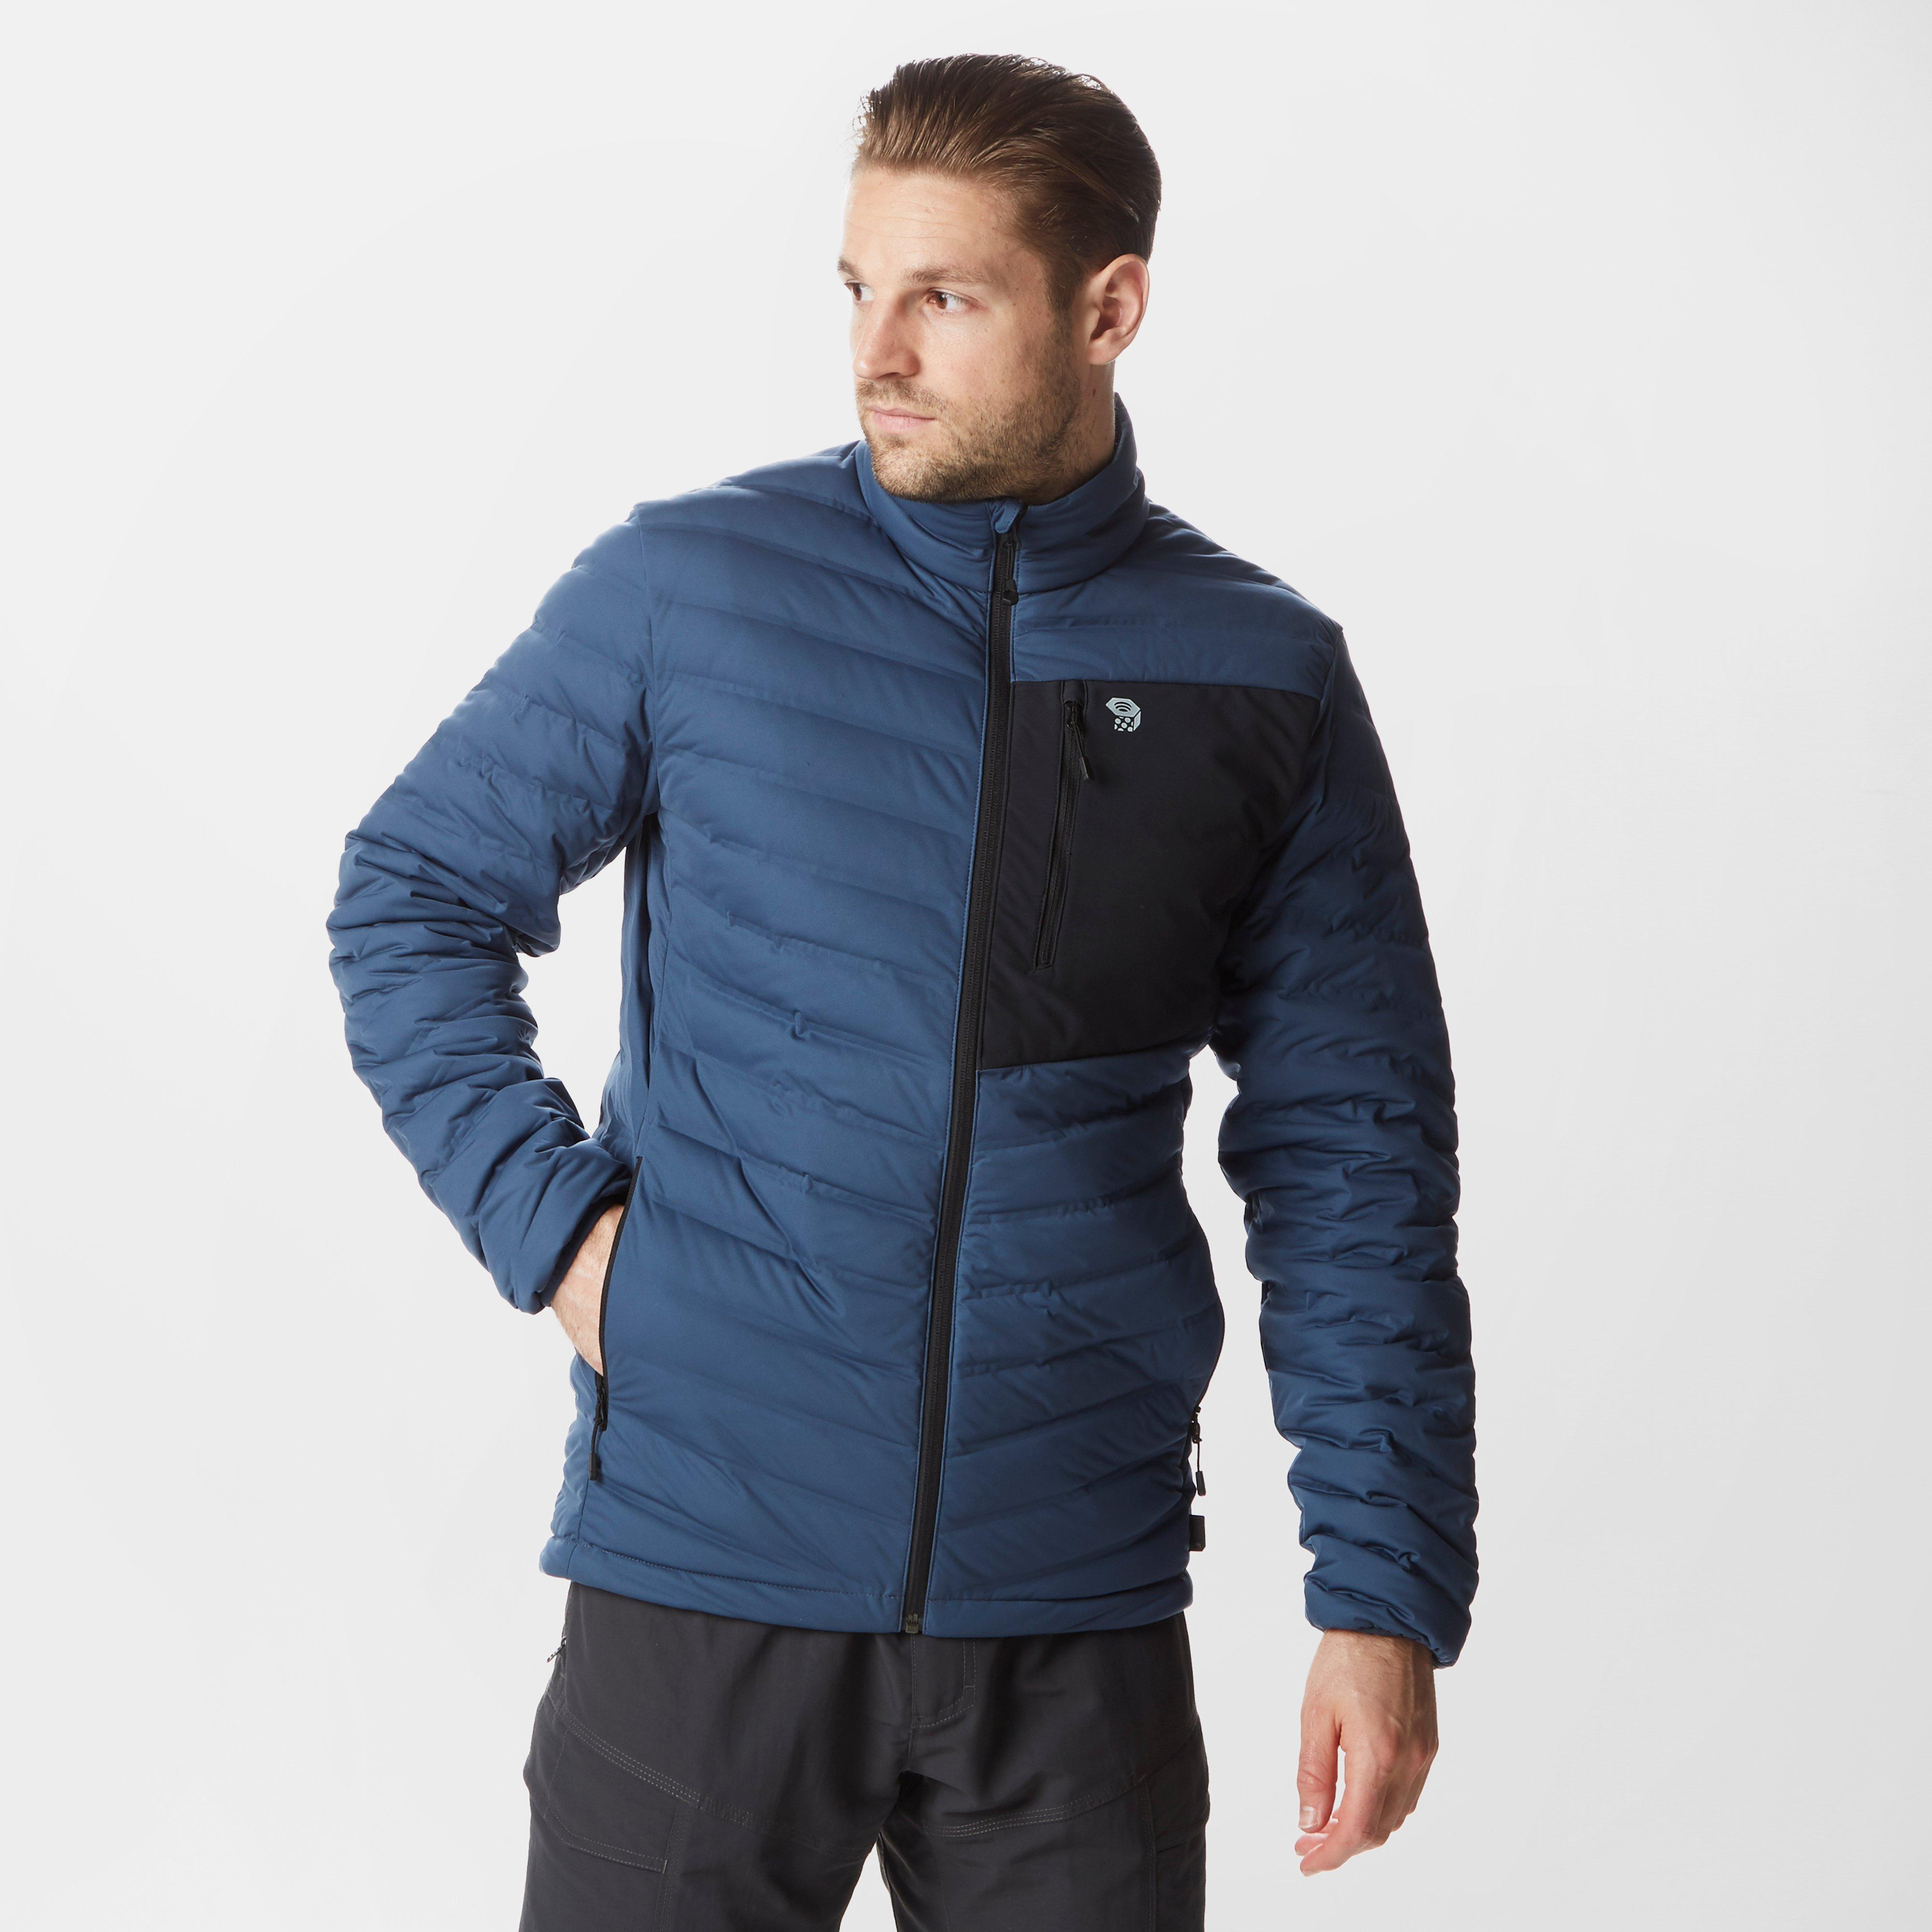 men lyst clothing for kereed quilt navy in jacket mens ted vertical product baker quilted blue gallery